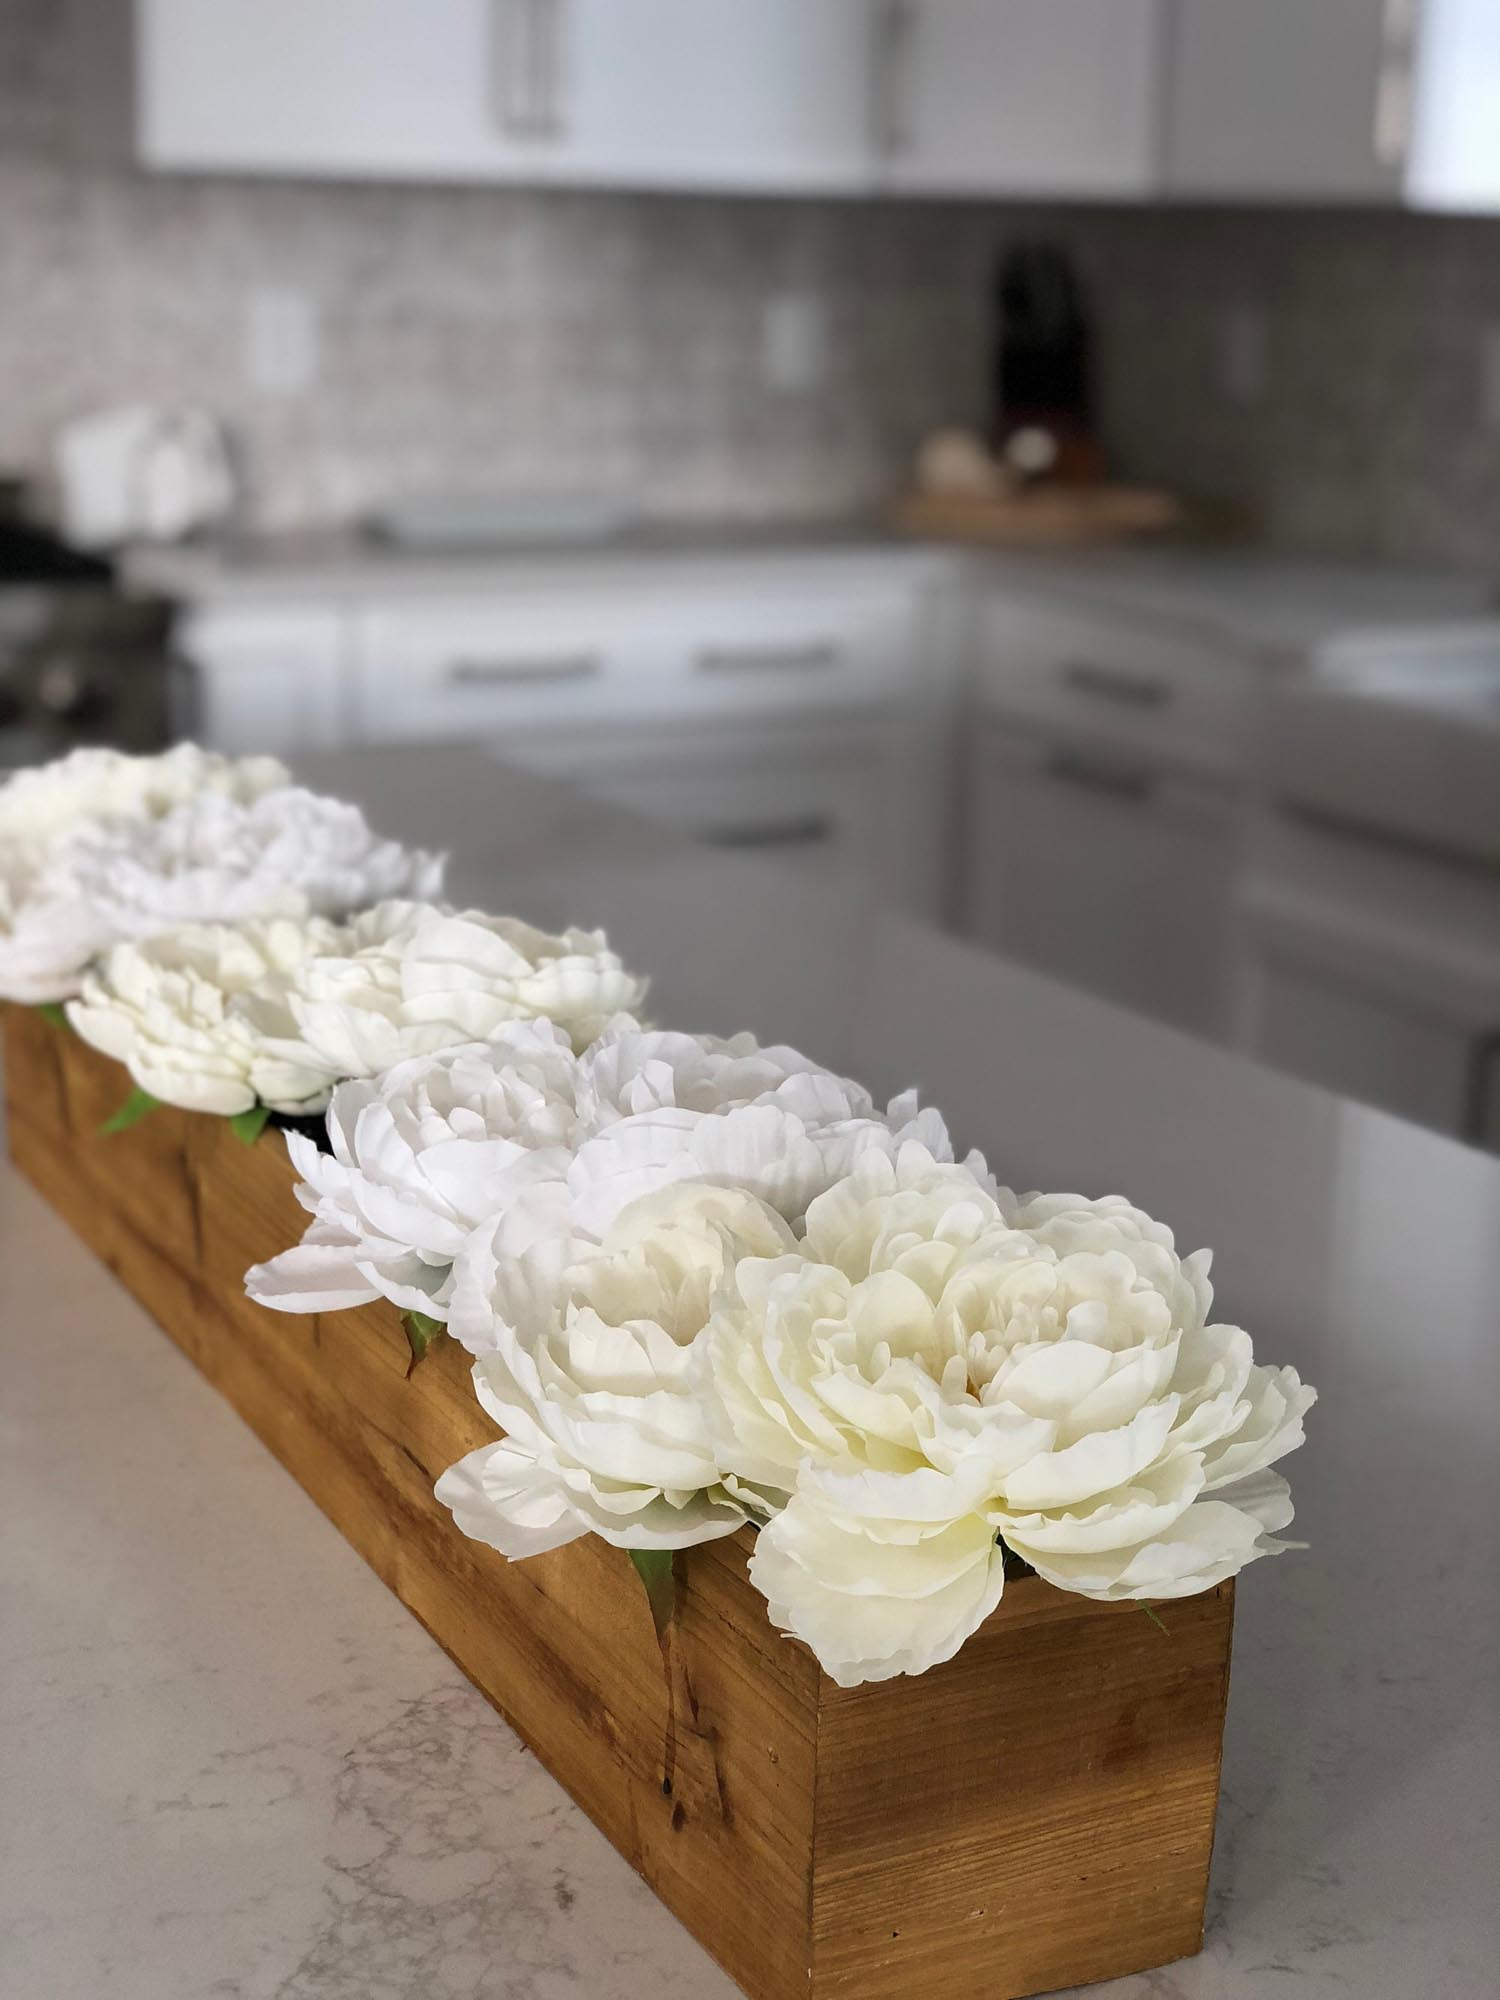 White flowers, placed in a long wooden trough